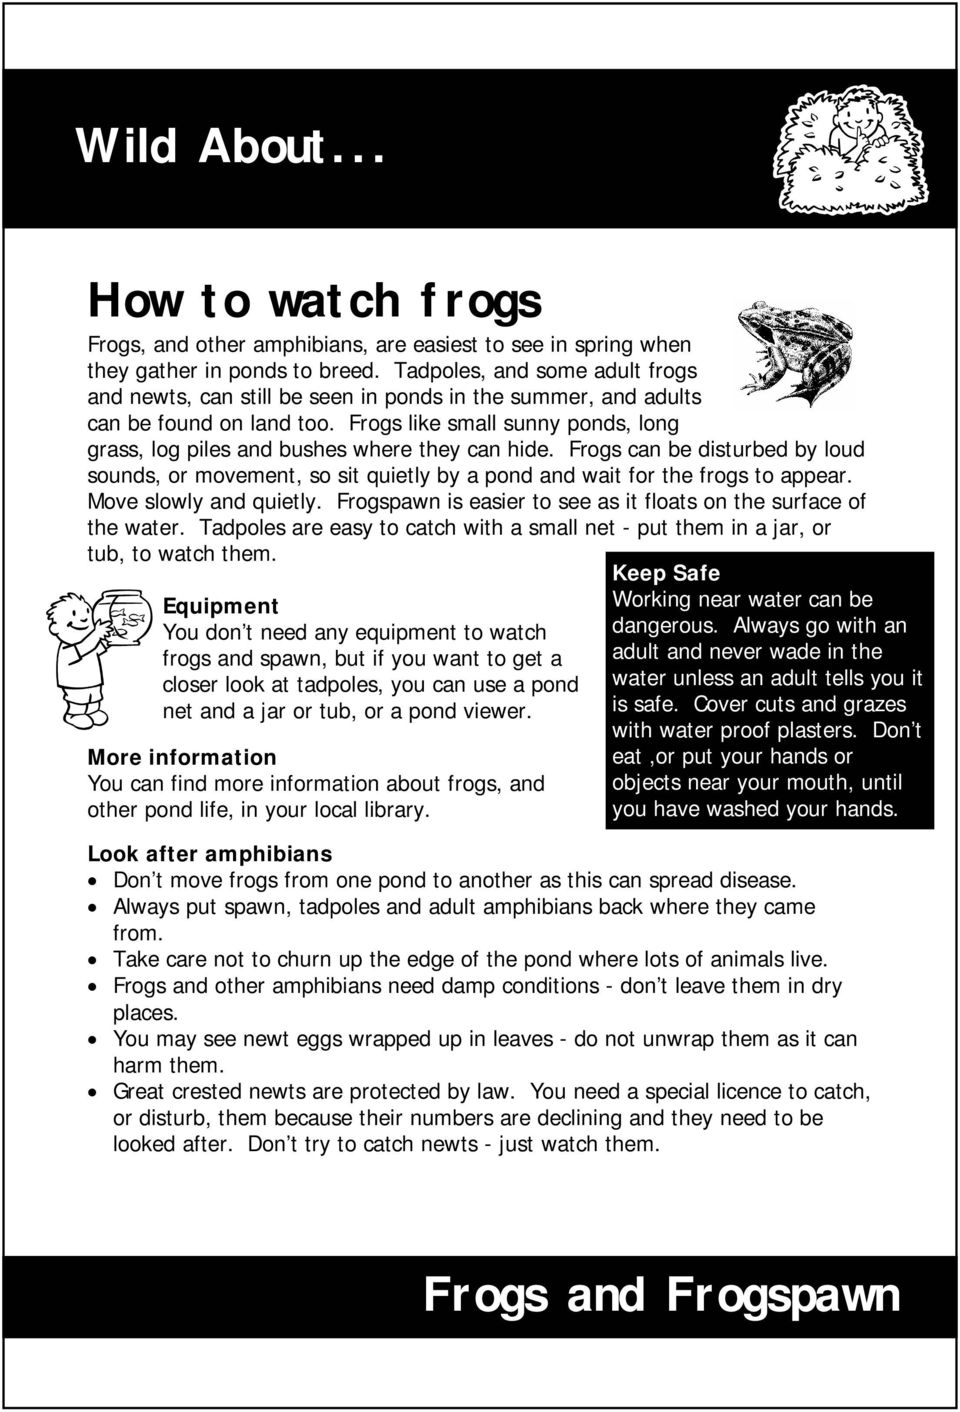 Frogs like small sunny ponds, long grass, log piles and bushes where they can hide. Frogs can be disturbed by loud sounds, or movement, so sit quietly by a pond and wait for the frogs to appear.